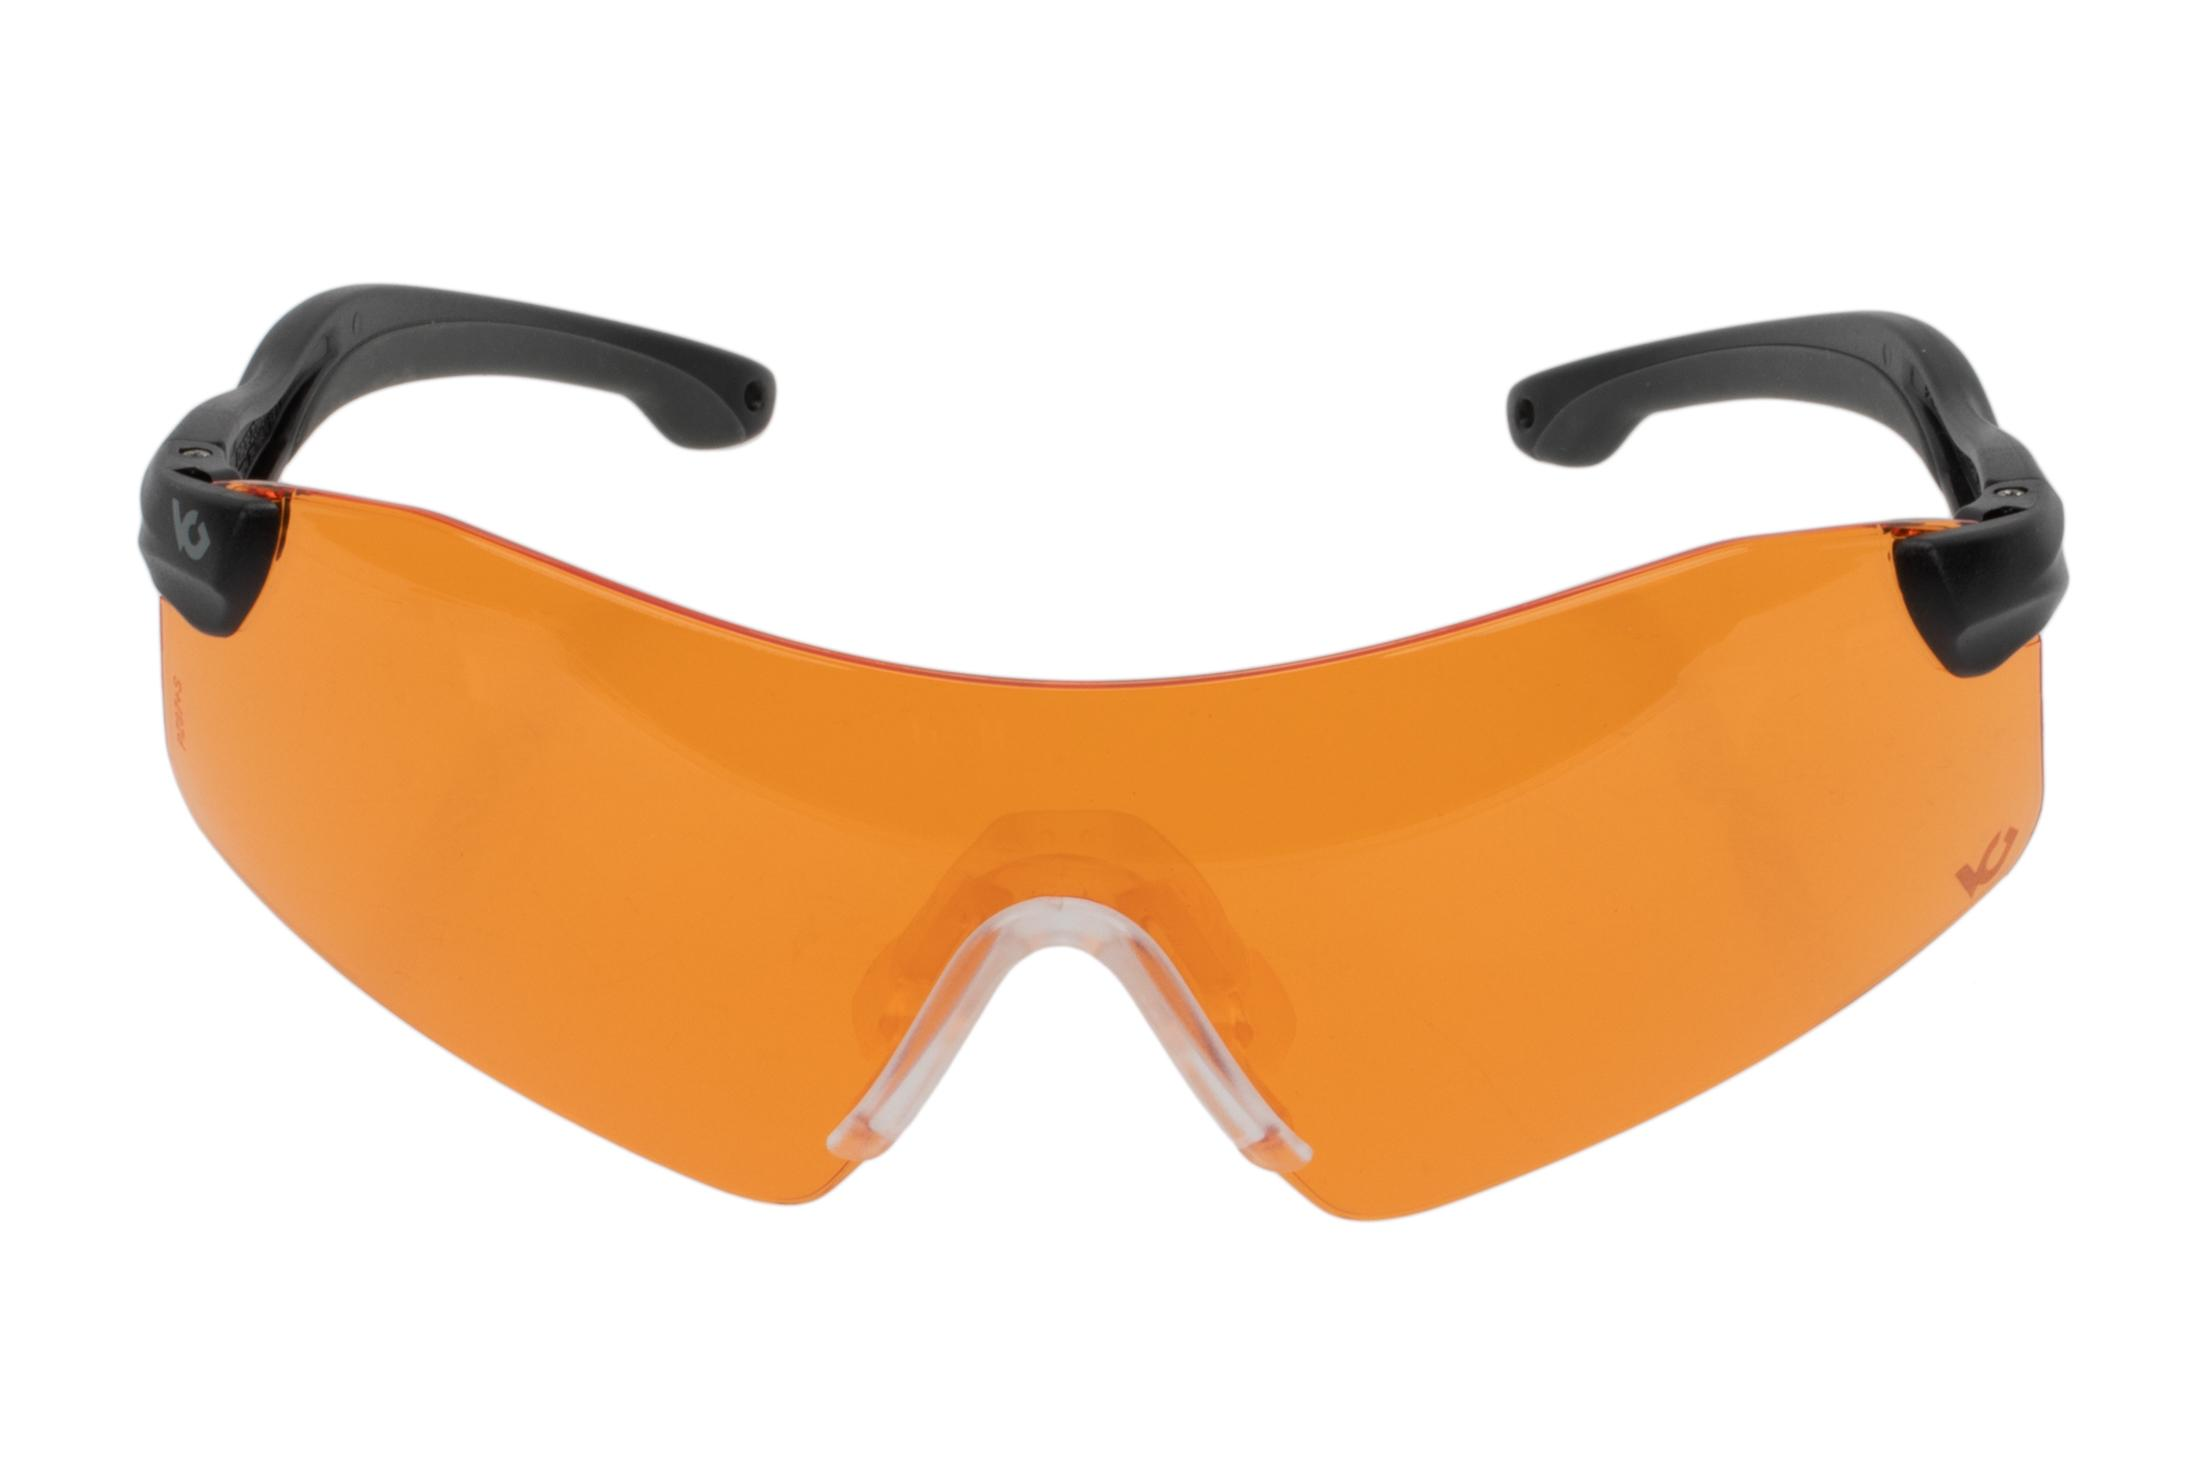 Pyramex Drop Zone Safety Glasses feature 4 interchangeable ballistically rated lenses. Shown with Orange.